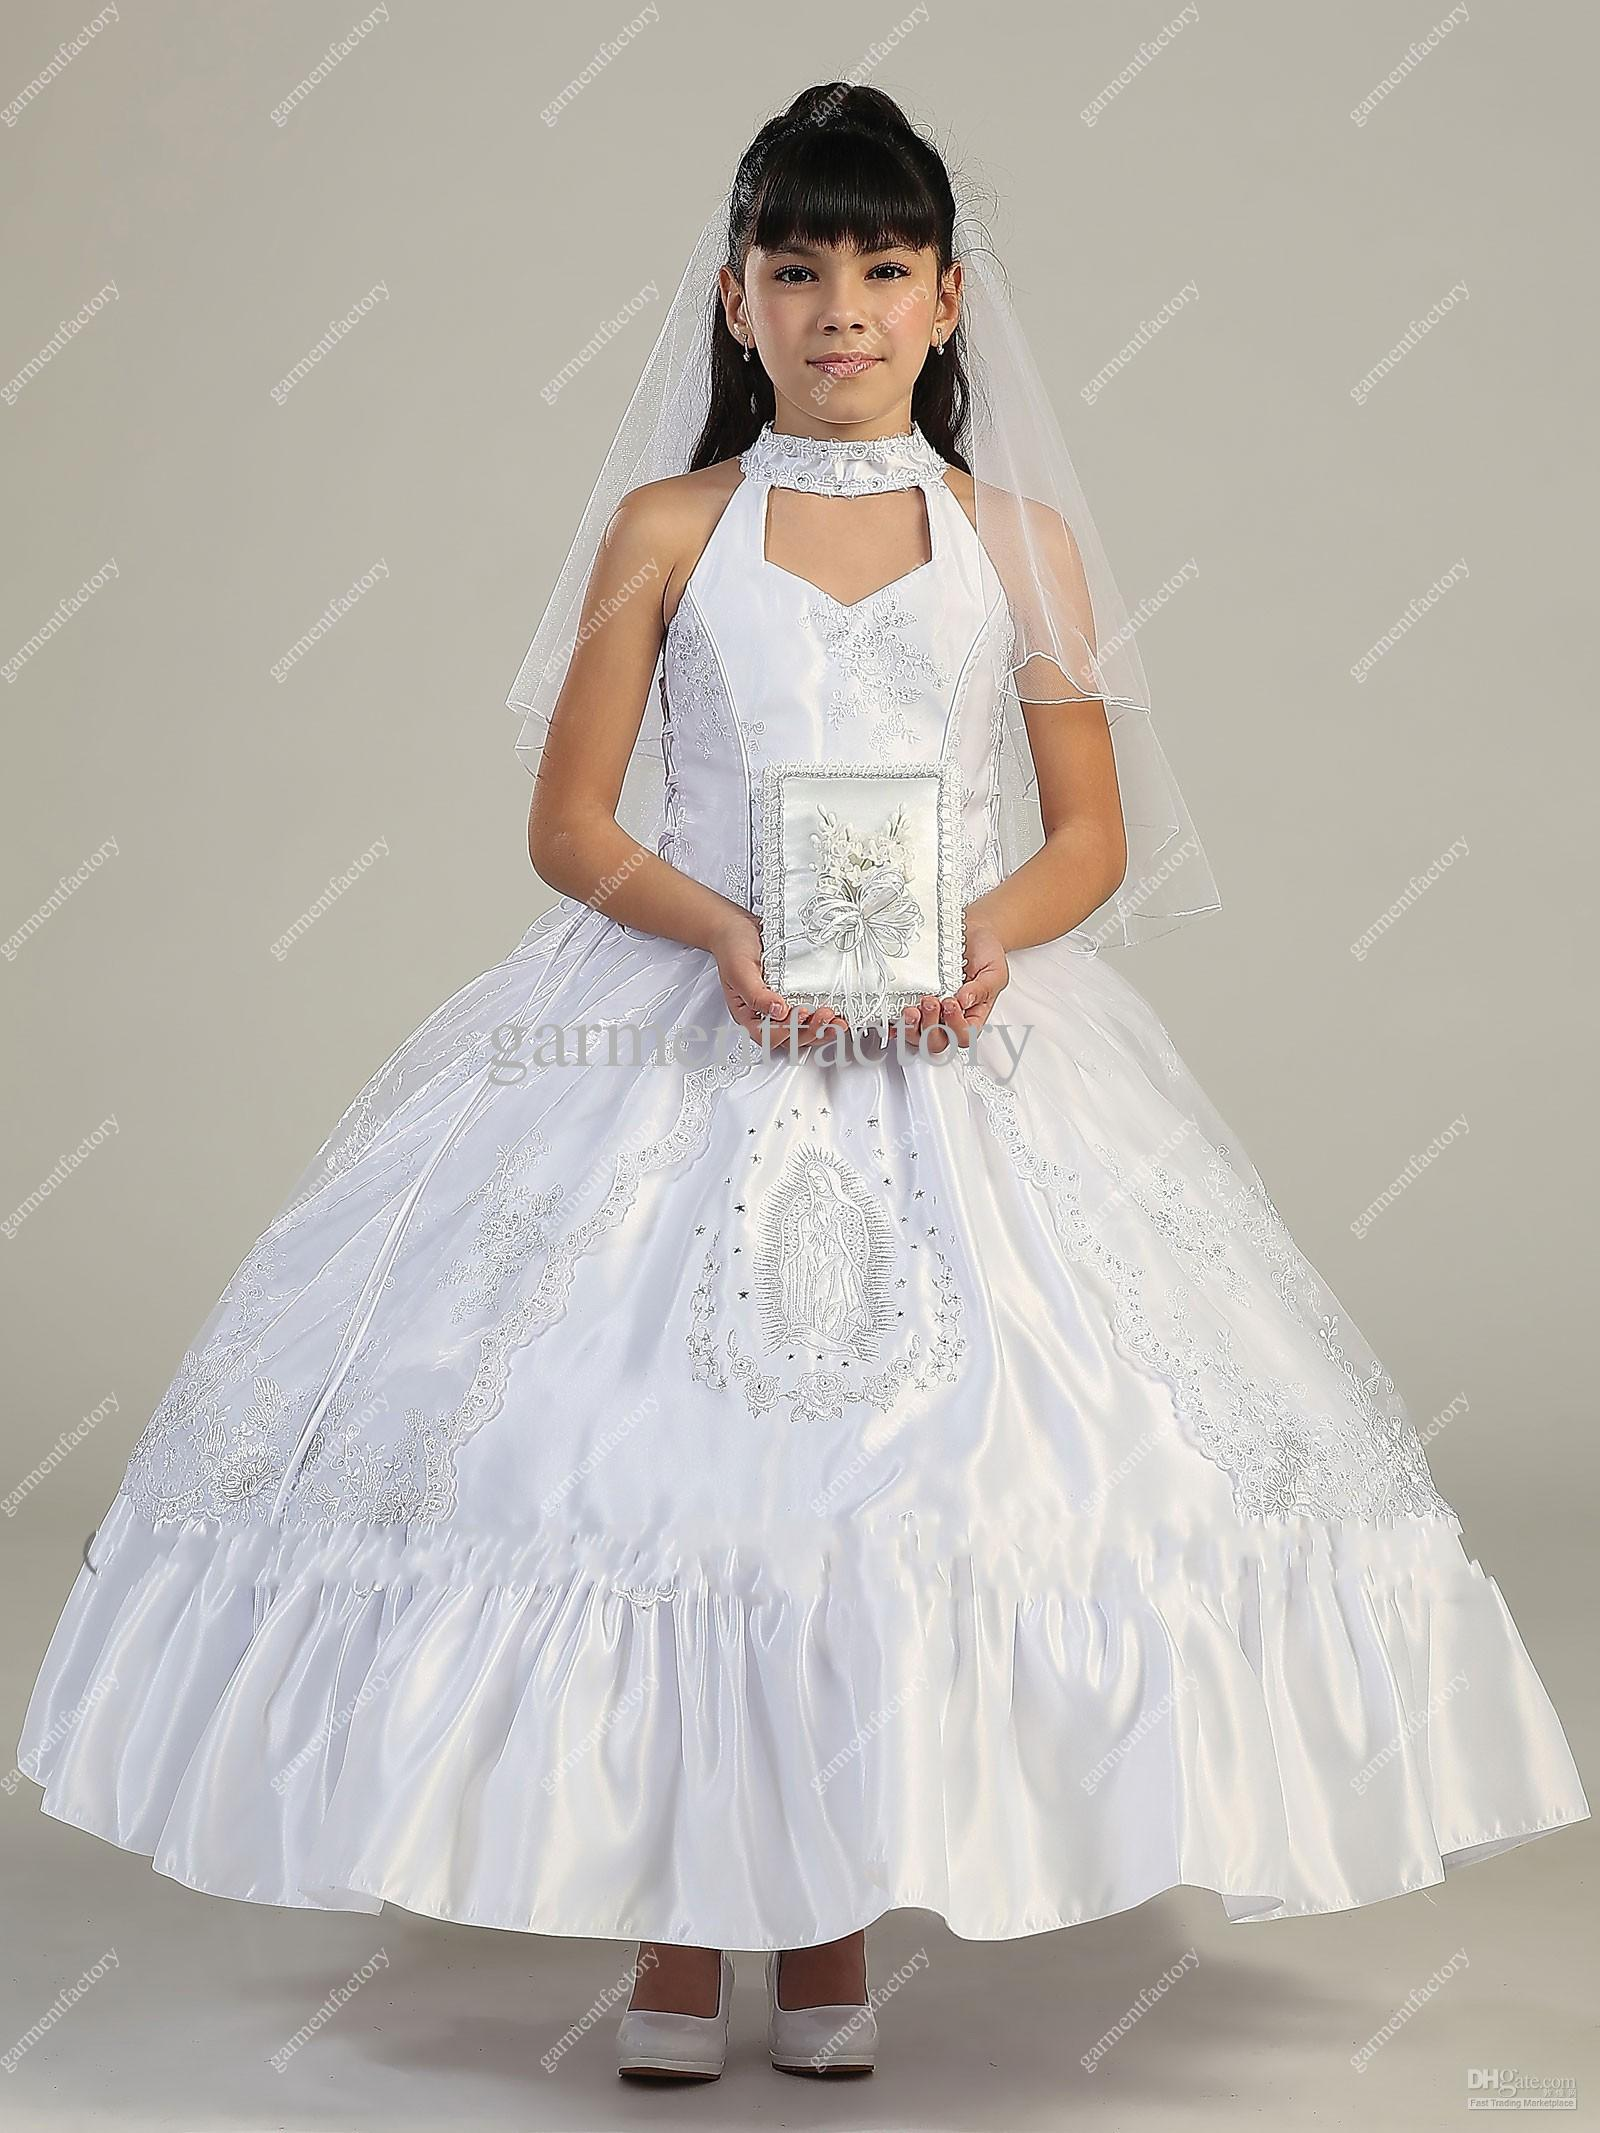 Girl bridesmaid dresses small girl bridesmaid dresses ombrellifo Image collections